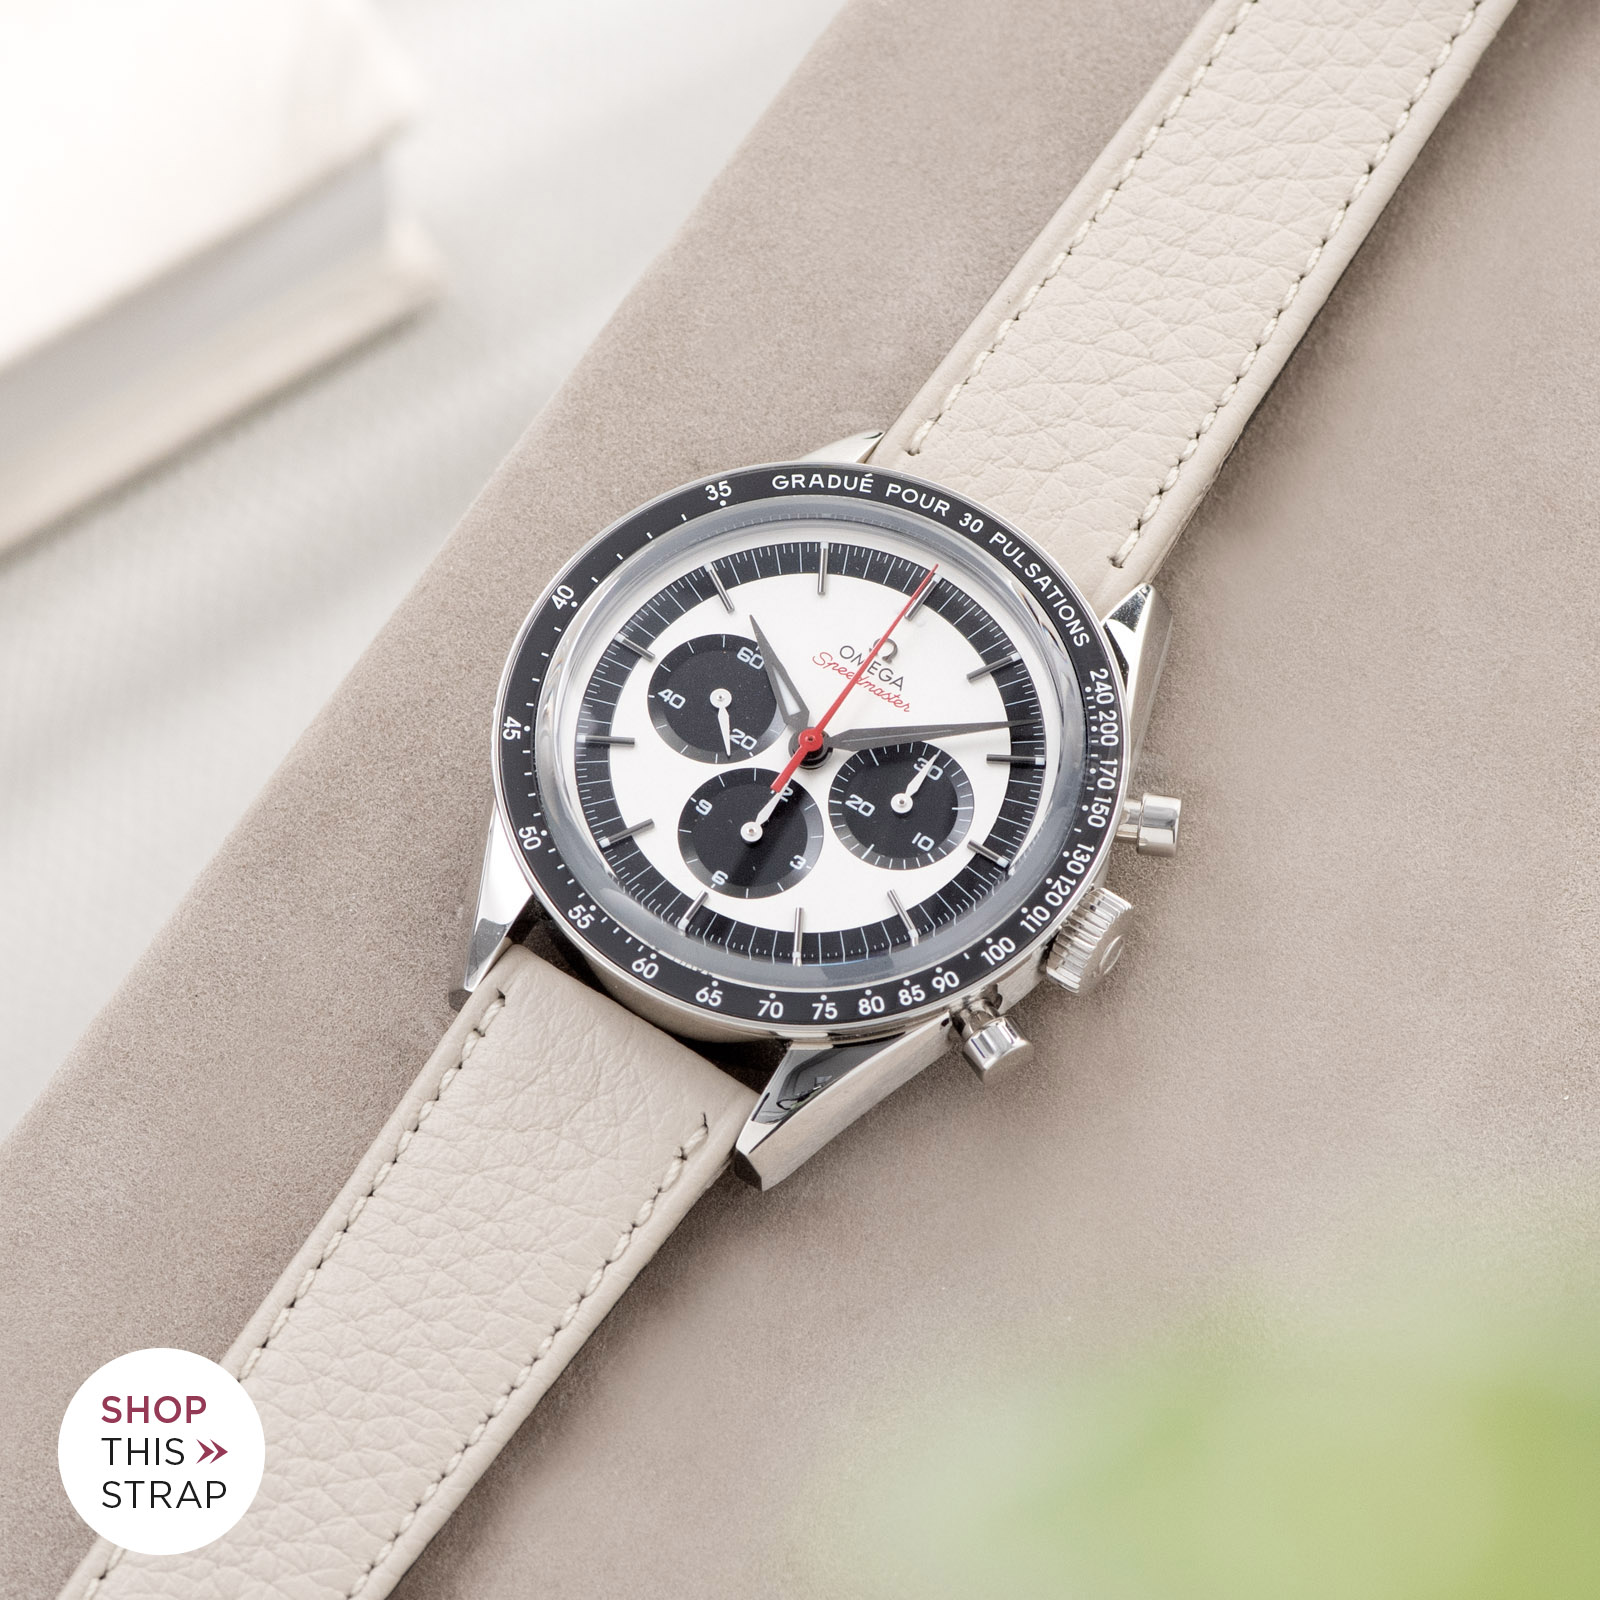 Bulang and Sons_Strap Guide_Omega Speedmaster 2998_Taurillon Creme Speedy Leather Watch Strap